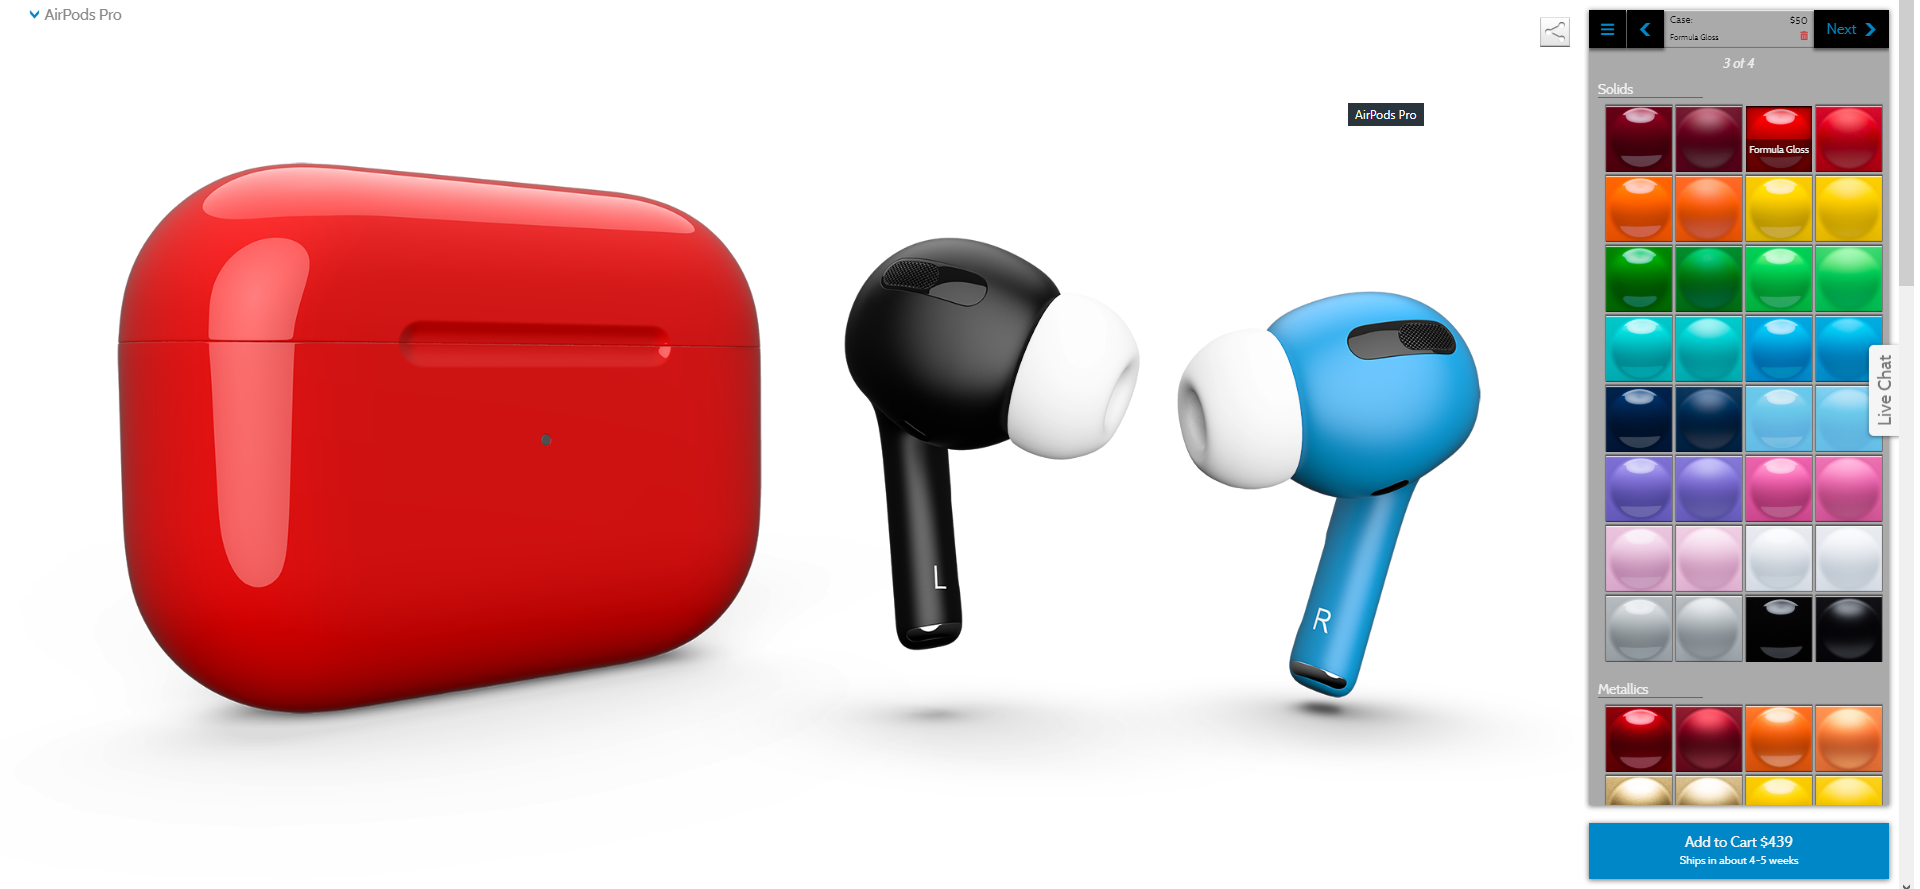 AirPods Pro in Farbe und Bunt-colorwave.png